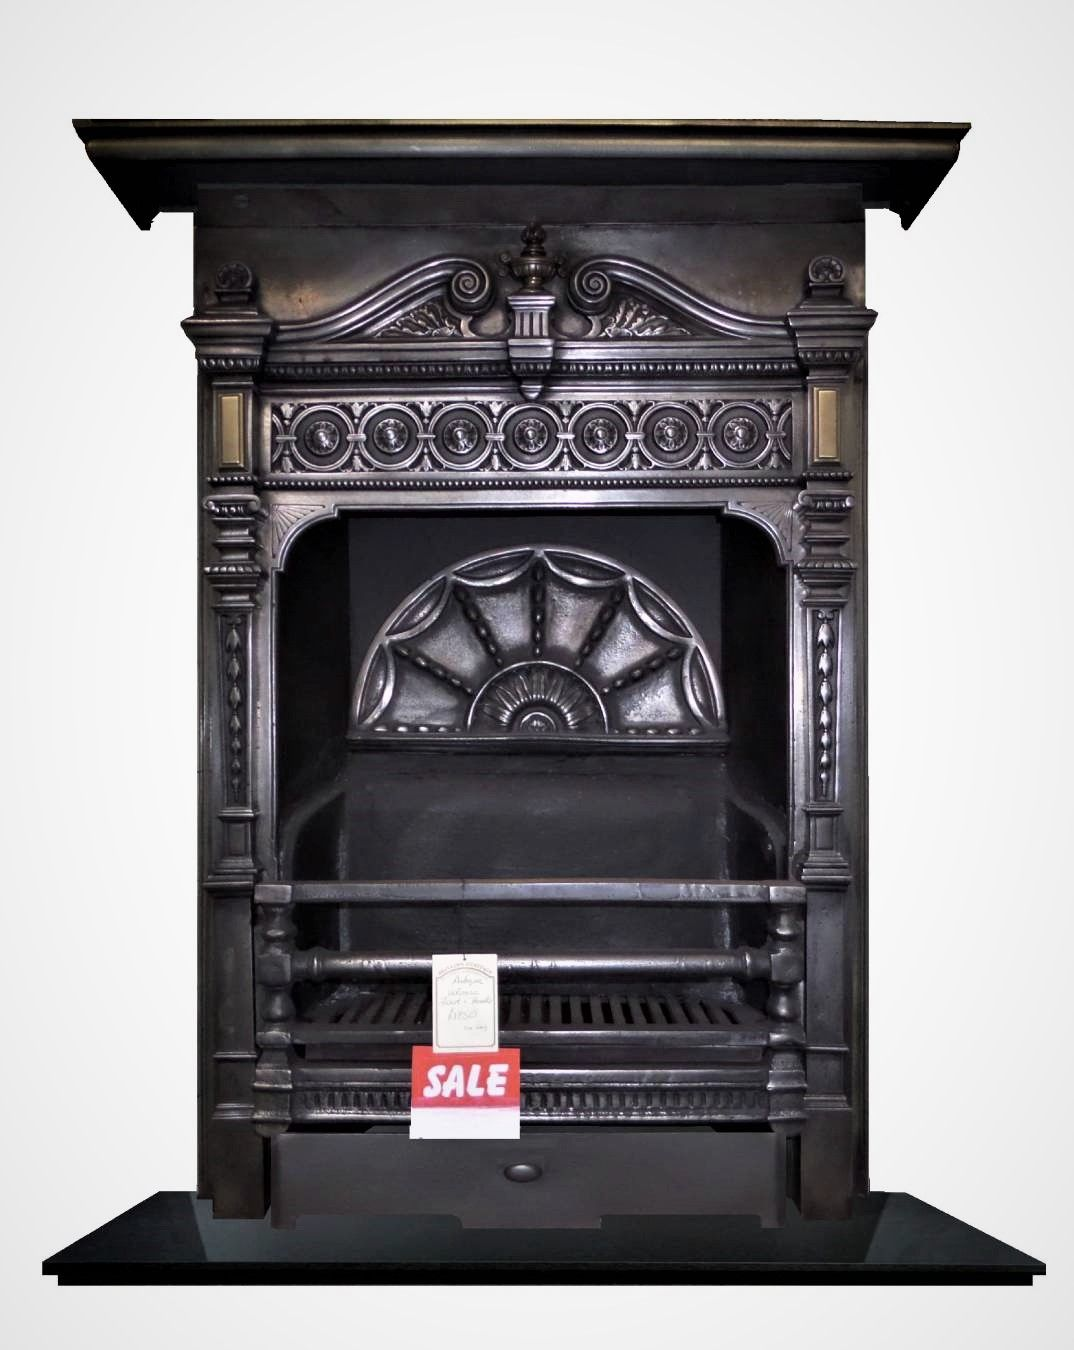 Remarkable Ornate Victorian Fireplace For Sale Offers Invited Email Home Remodeling Inspirations Cosmcuboardxyz